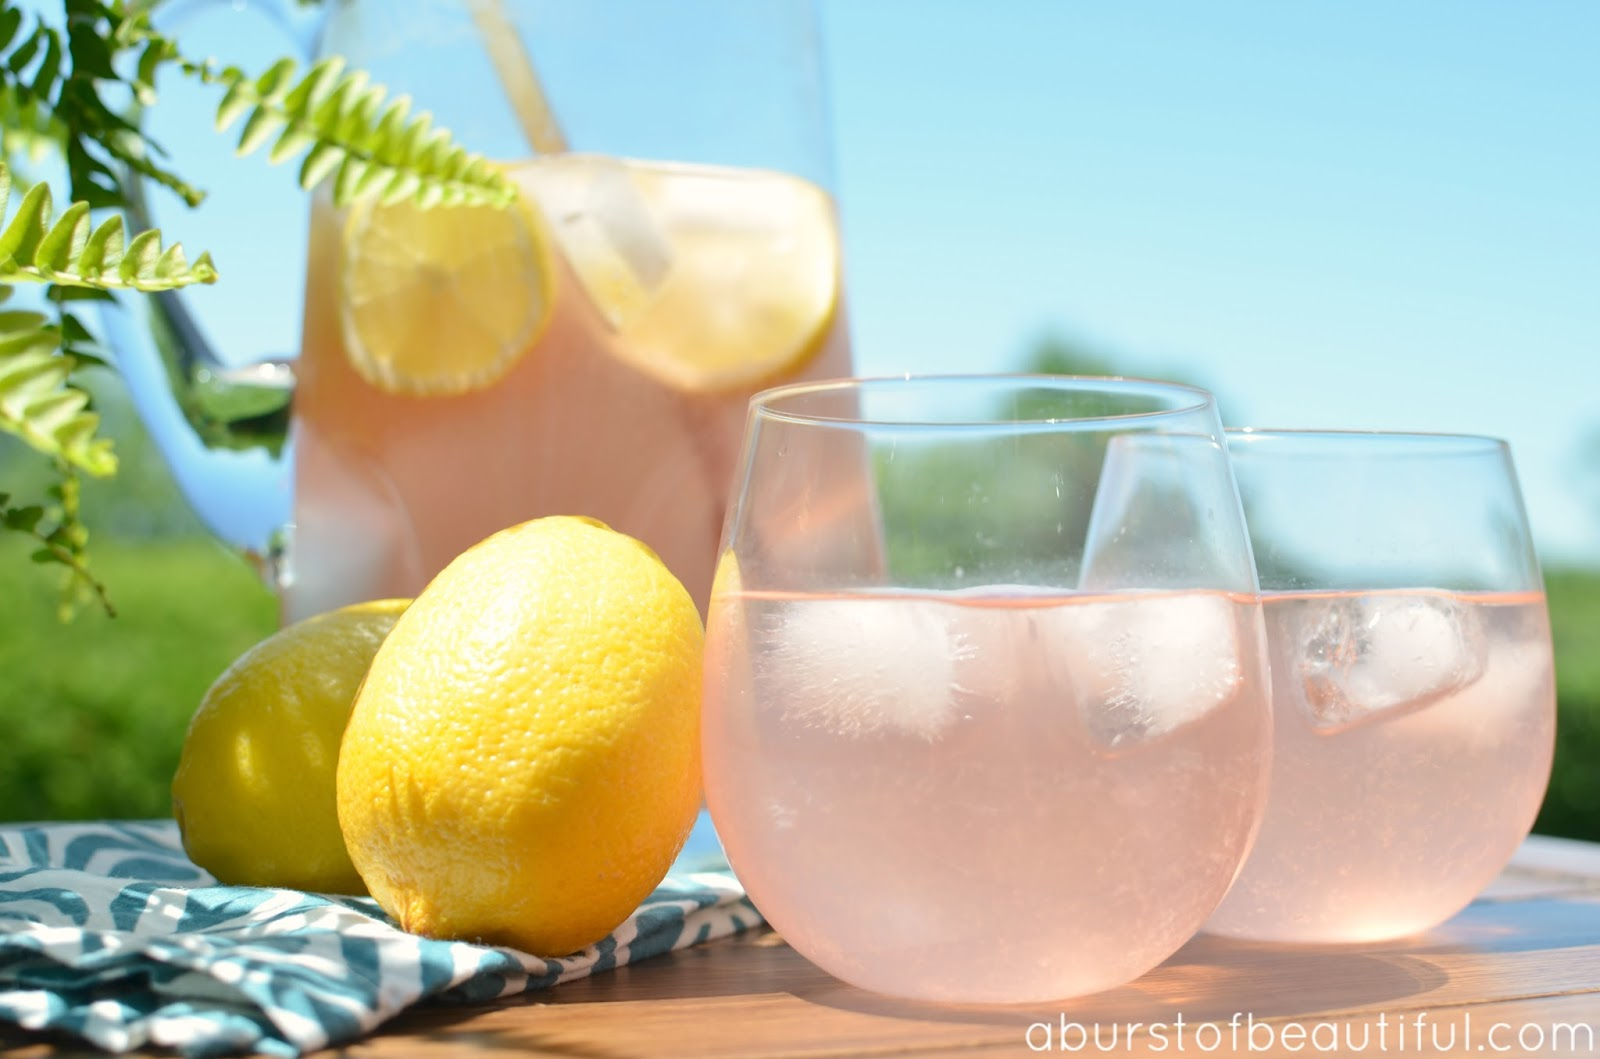 Sparkling Pink Lemonade - A Burst of Beautiful